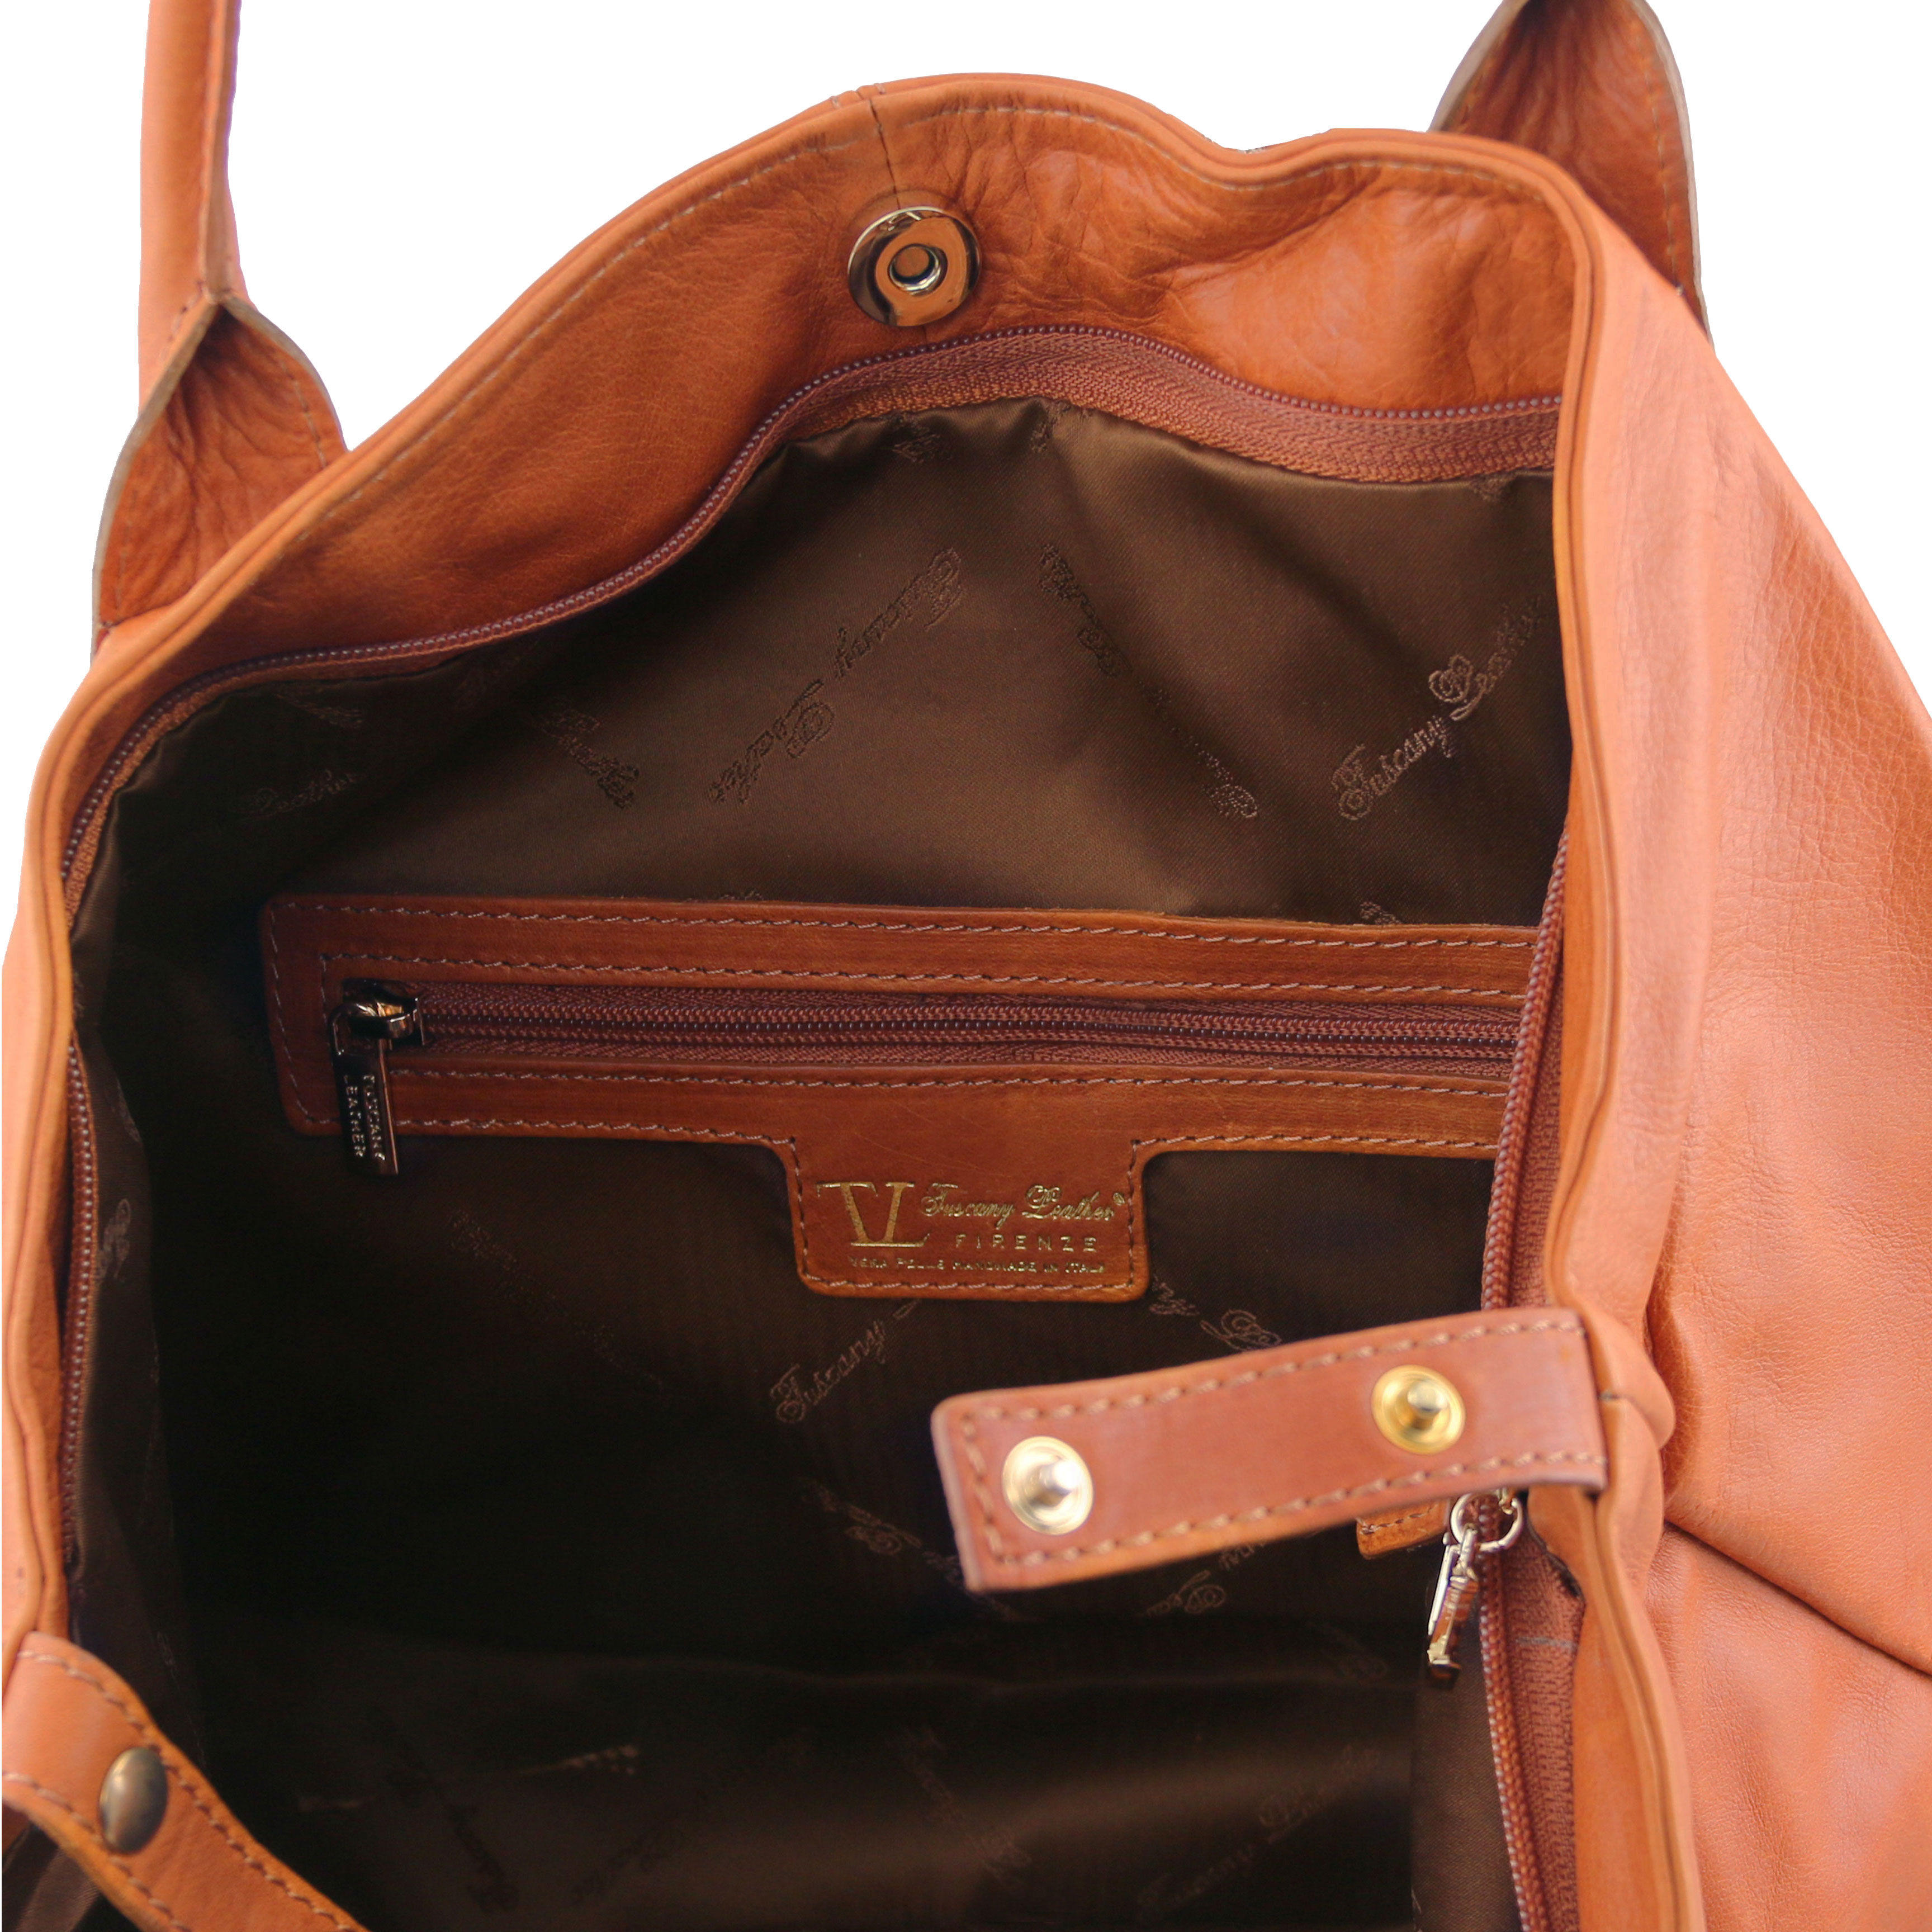 TL141478 Tuscany Leather TL KEYLUCK Leather Shoulder - Shopper Bag